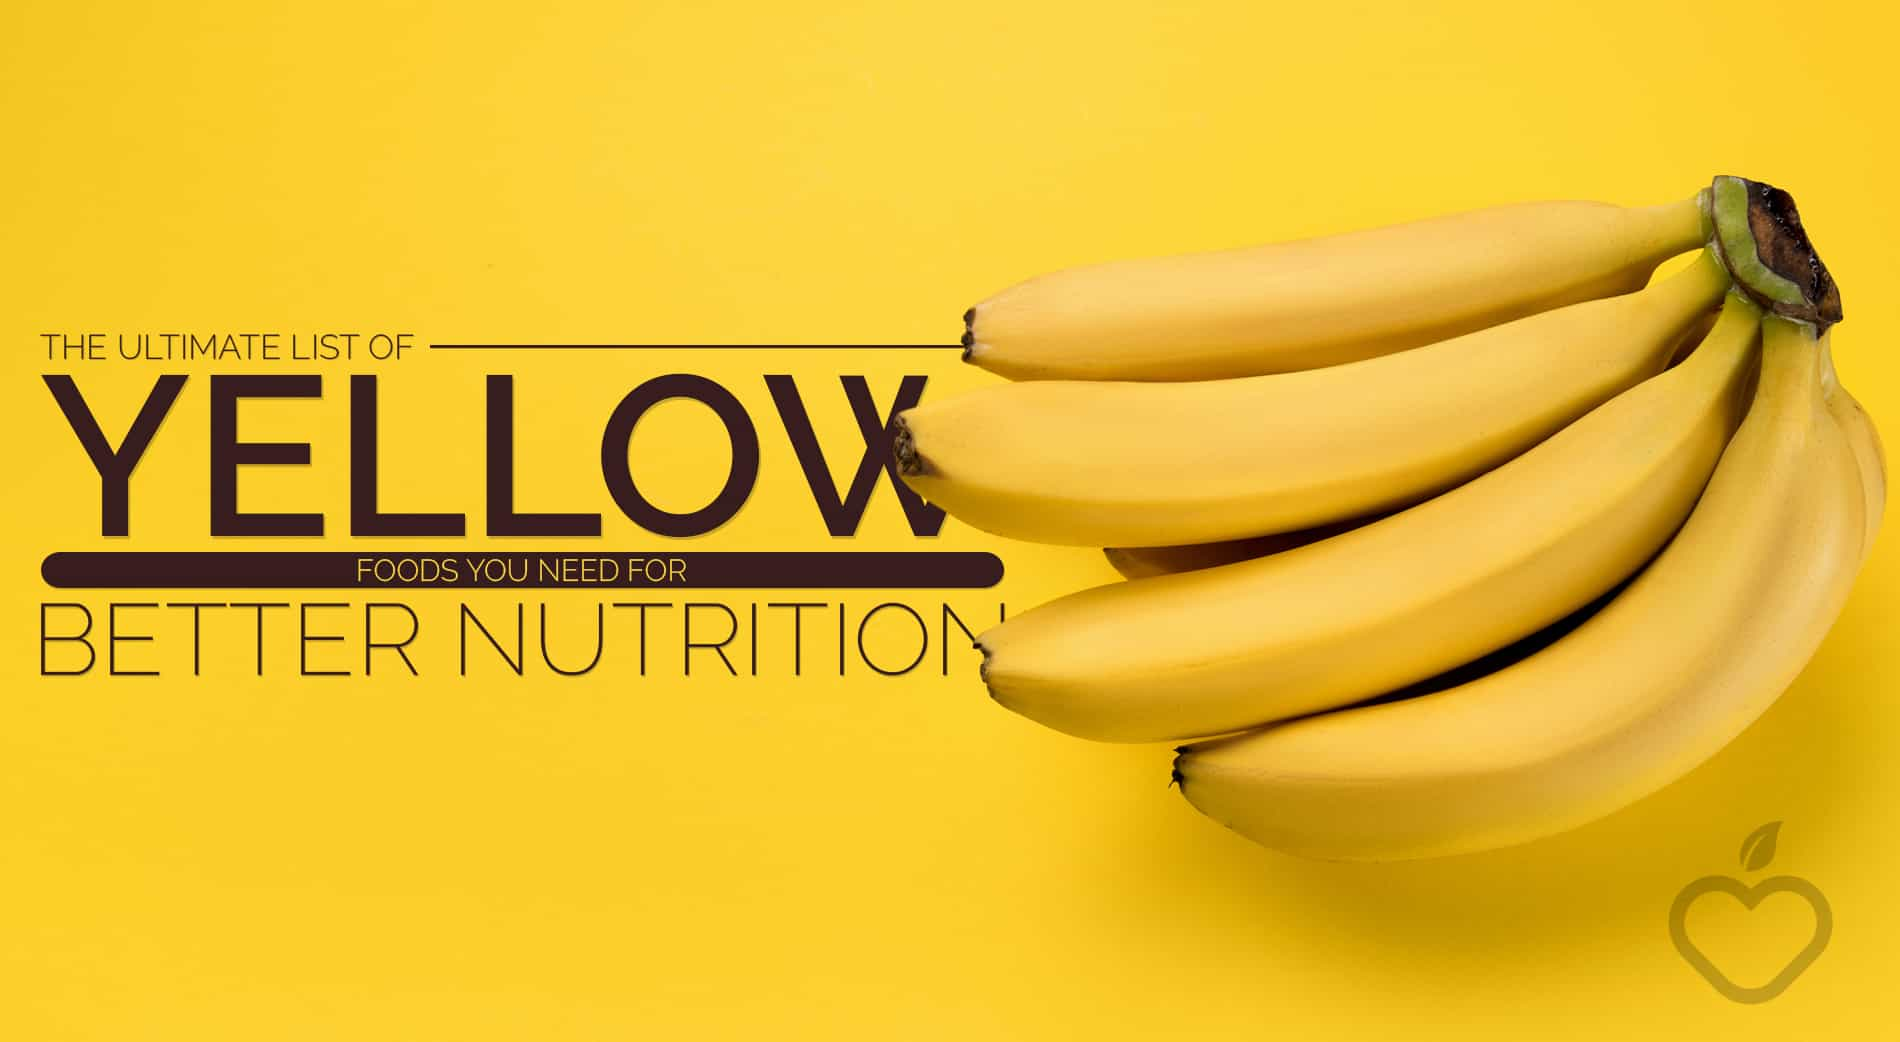 Yellow Foods Image Design 1 - The Ultimate List of Yellow Foods You Need for Better Nutrition